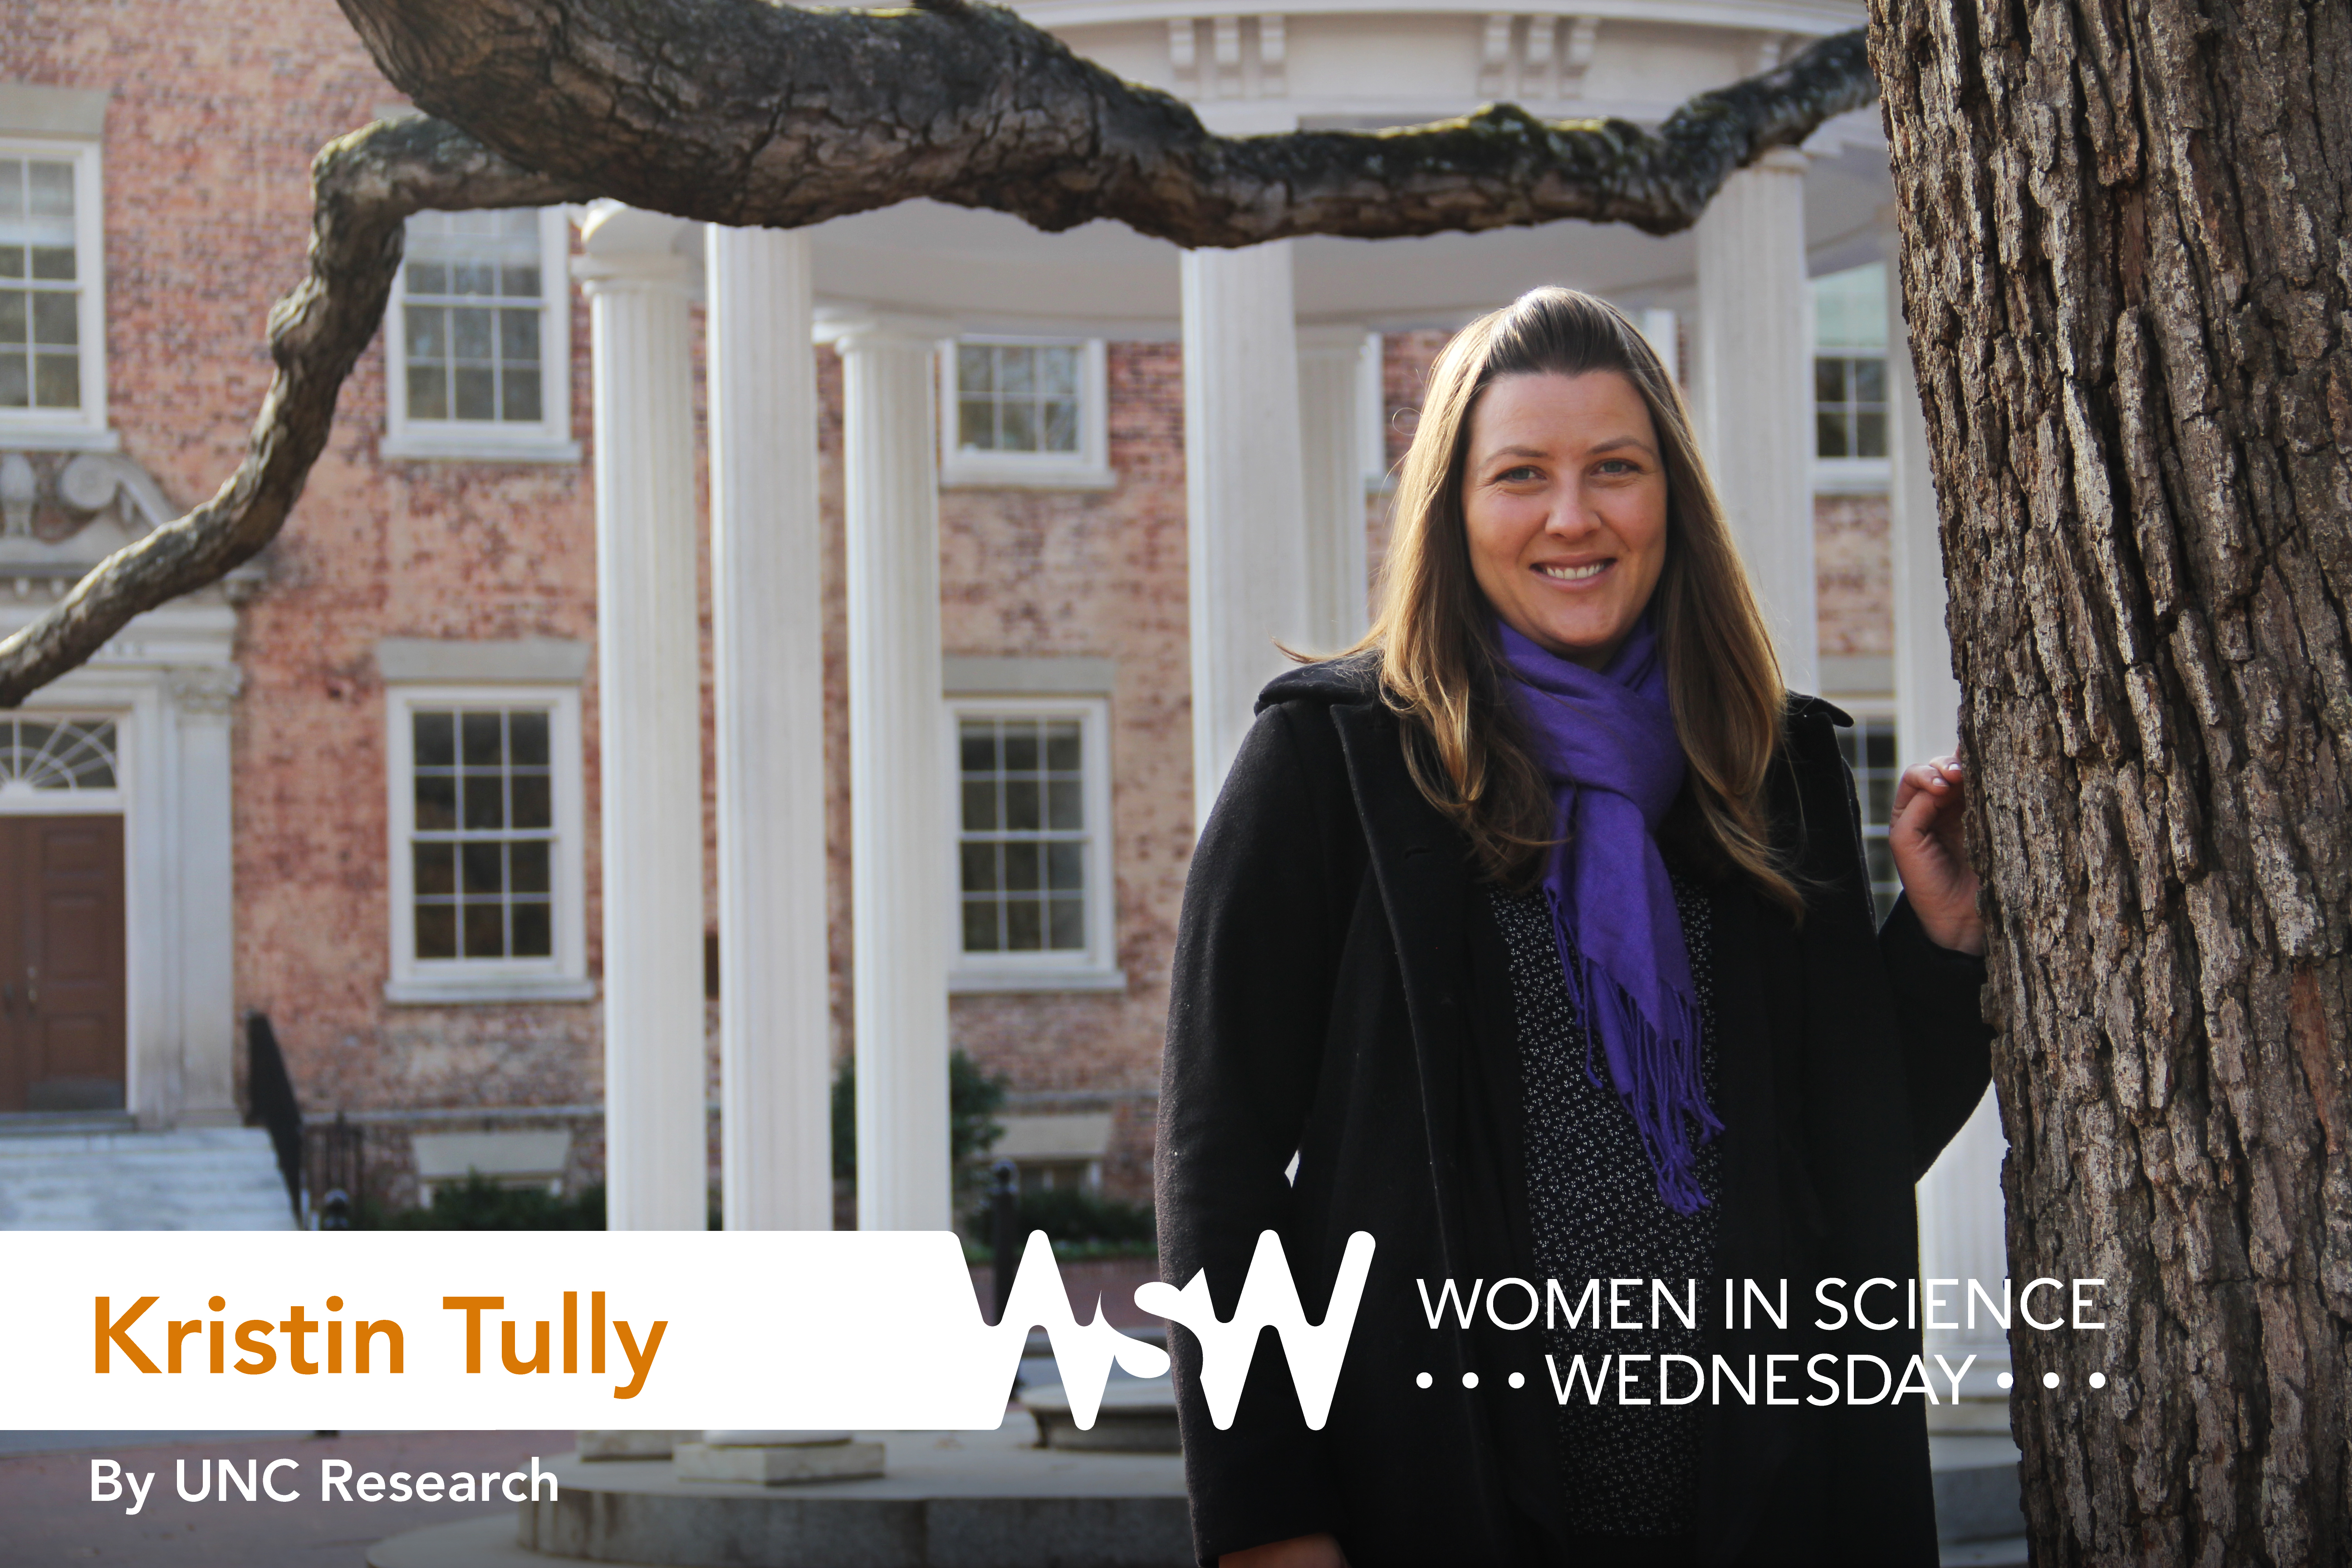 Kristin Tully poses on campus in front of the Old Well